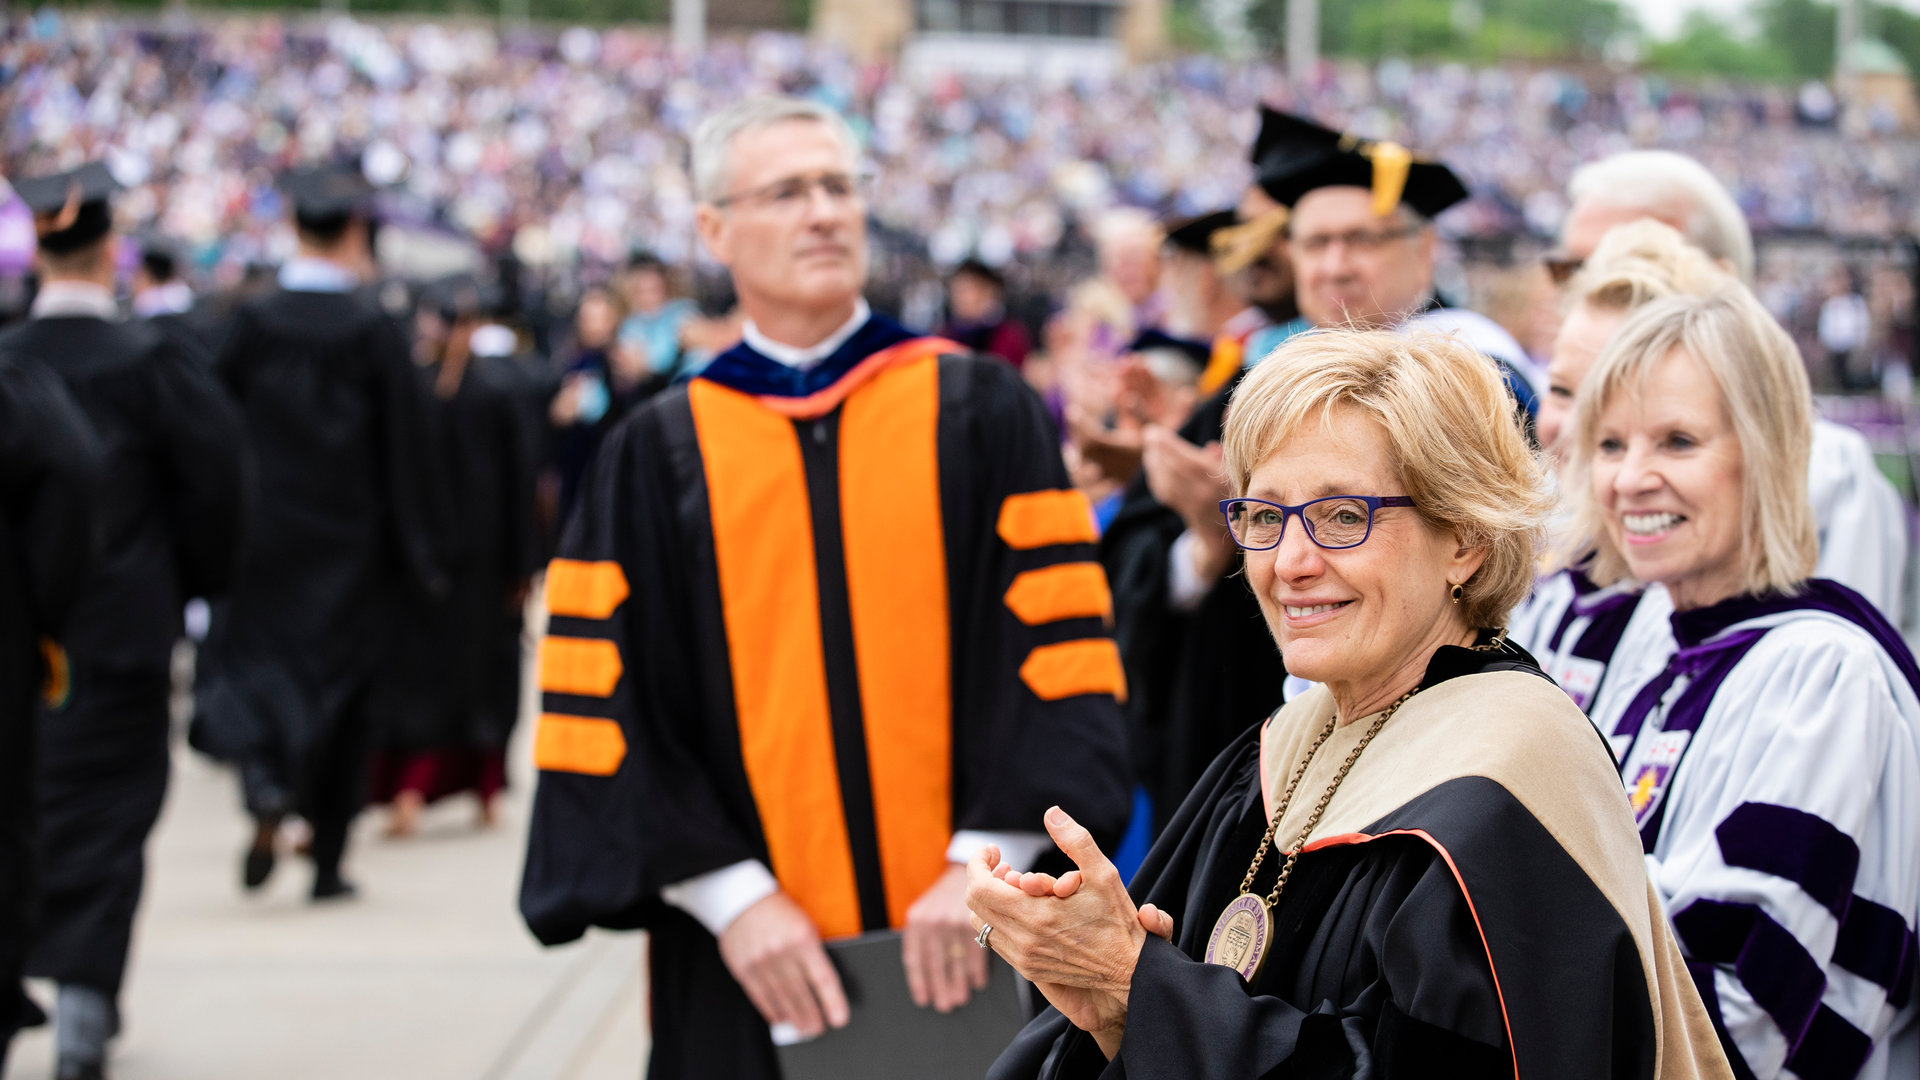 Julie Sullivan and other trustees clap for graduates at a commencement ceremony